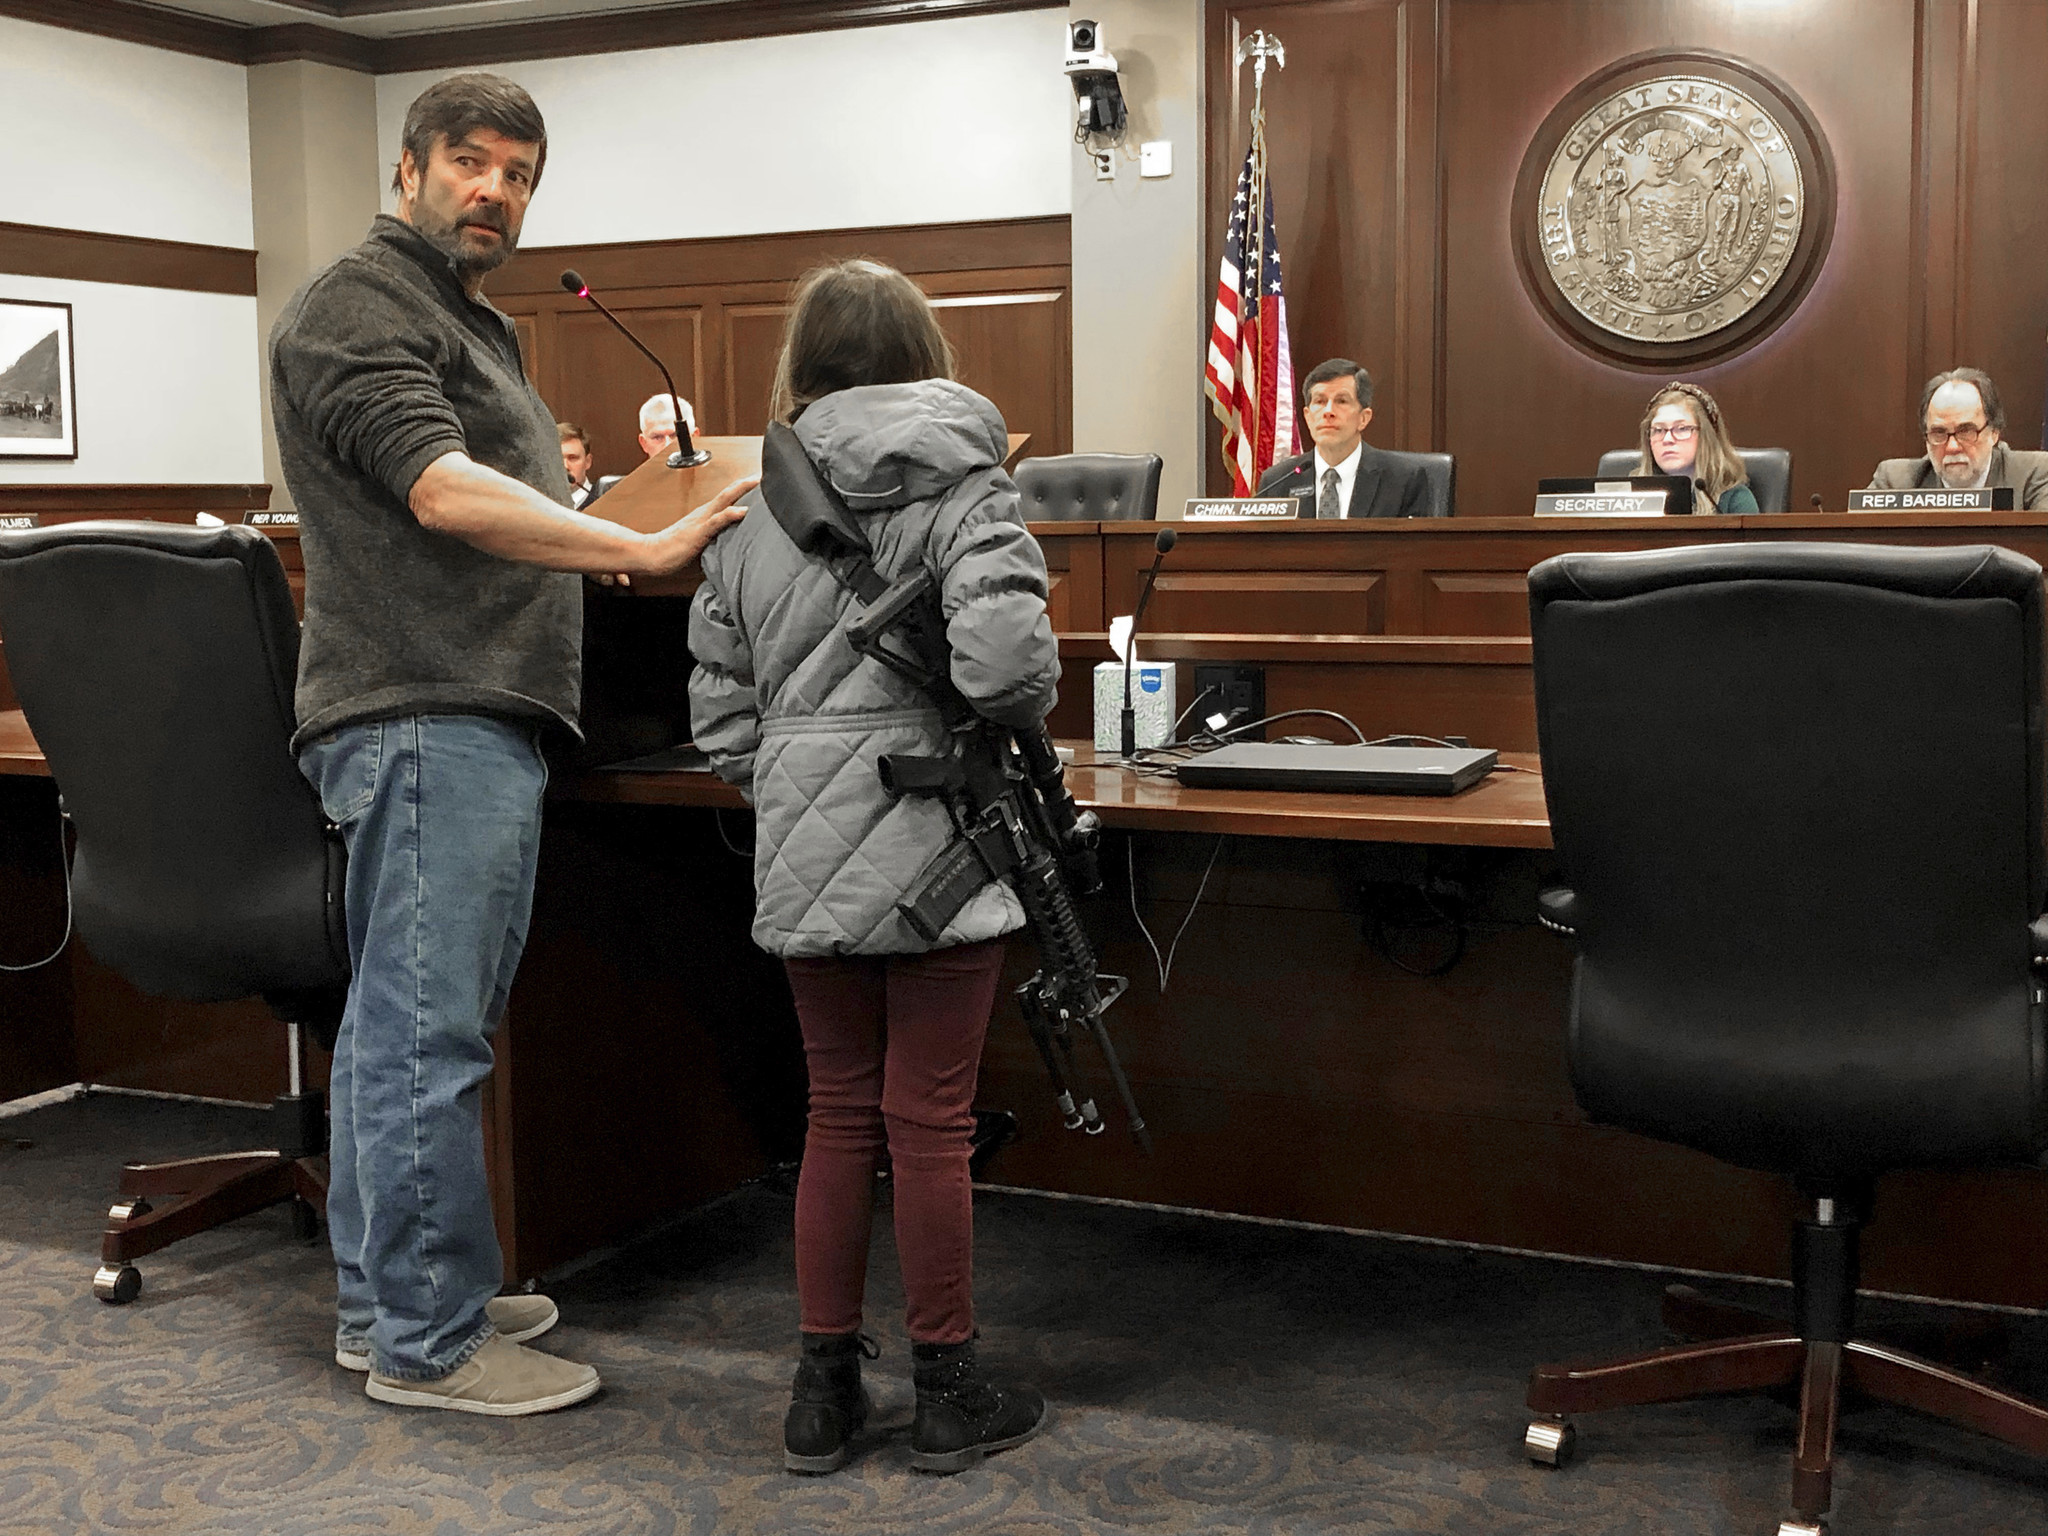 An 11-year-old girl brought a loaded AR-15 to the Idaho statehouse